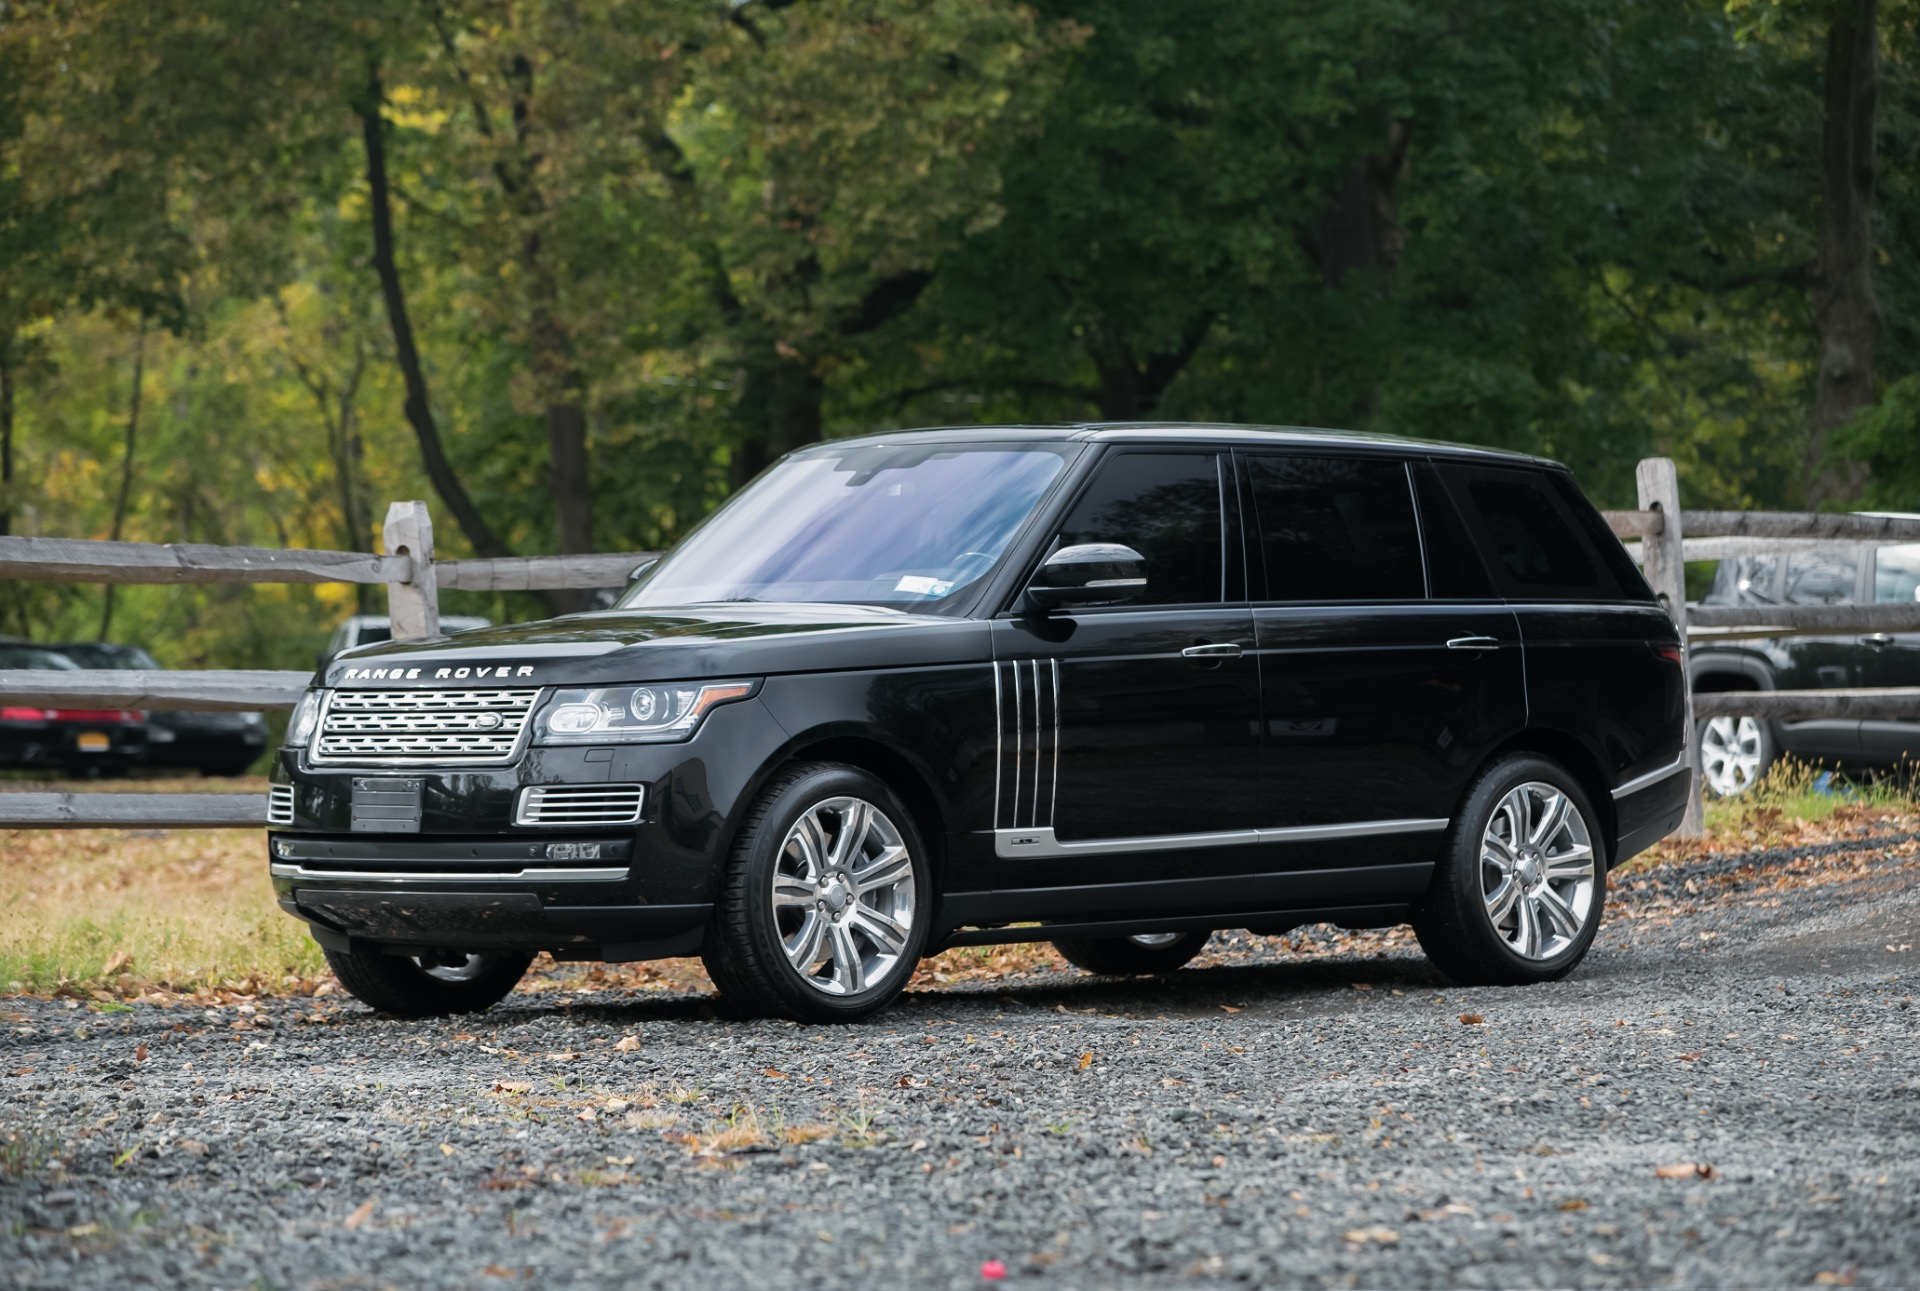 2015 Land Rover Range Rover Autobiography LWB Black Edition ...